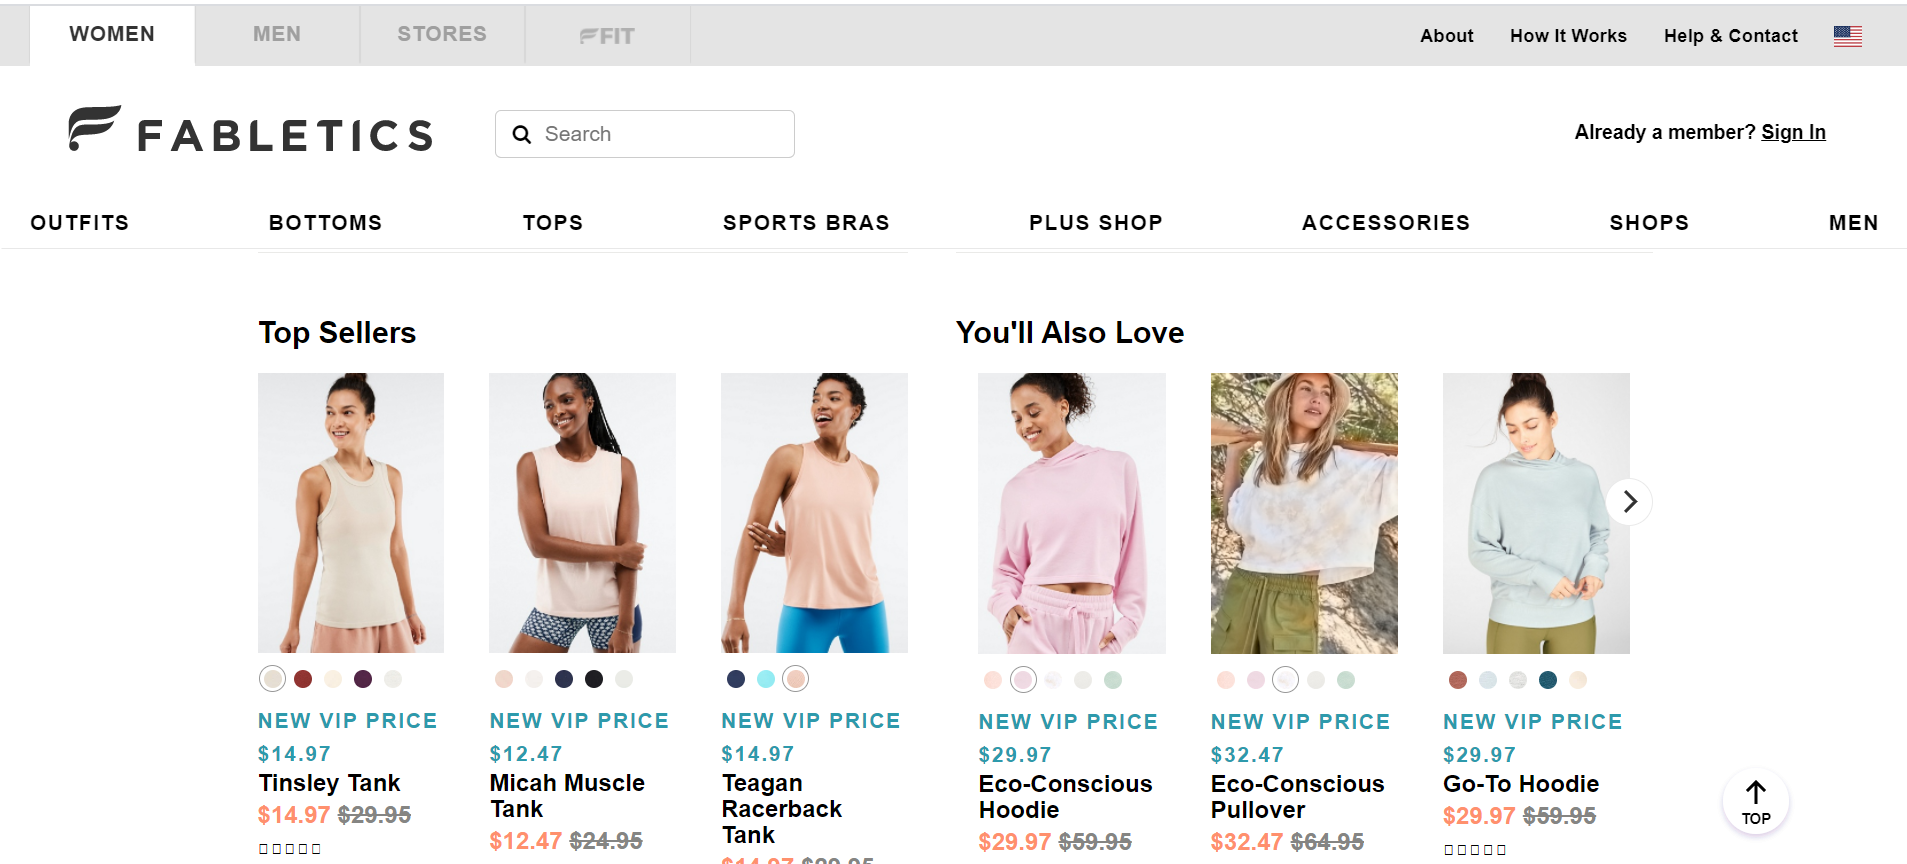 """Fabletics """"You'll Also Love"""" and """"Top Bestsellers"""" categories boost user engagement"""